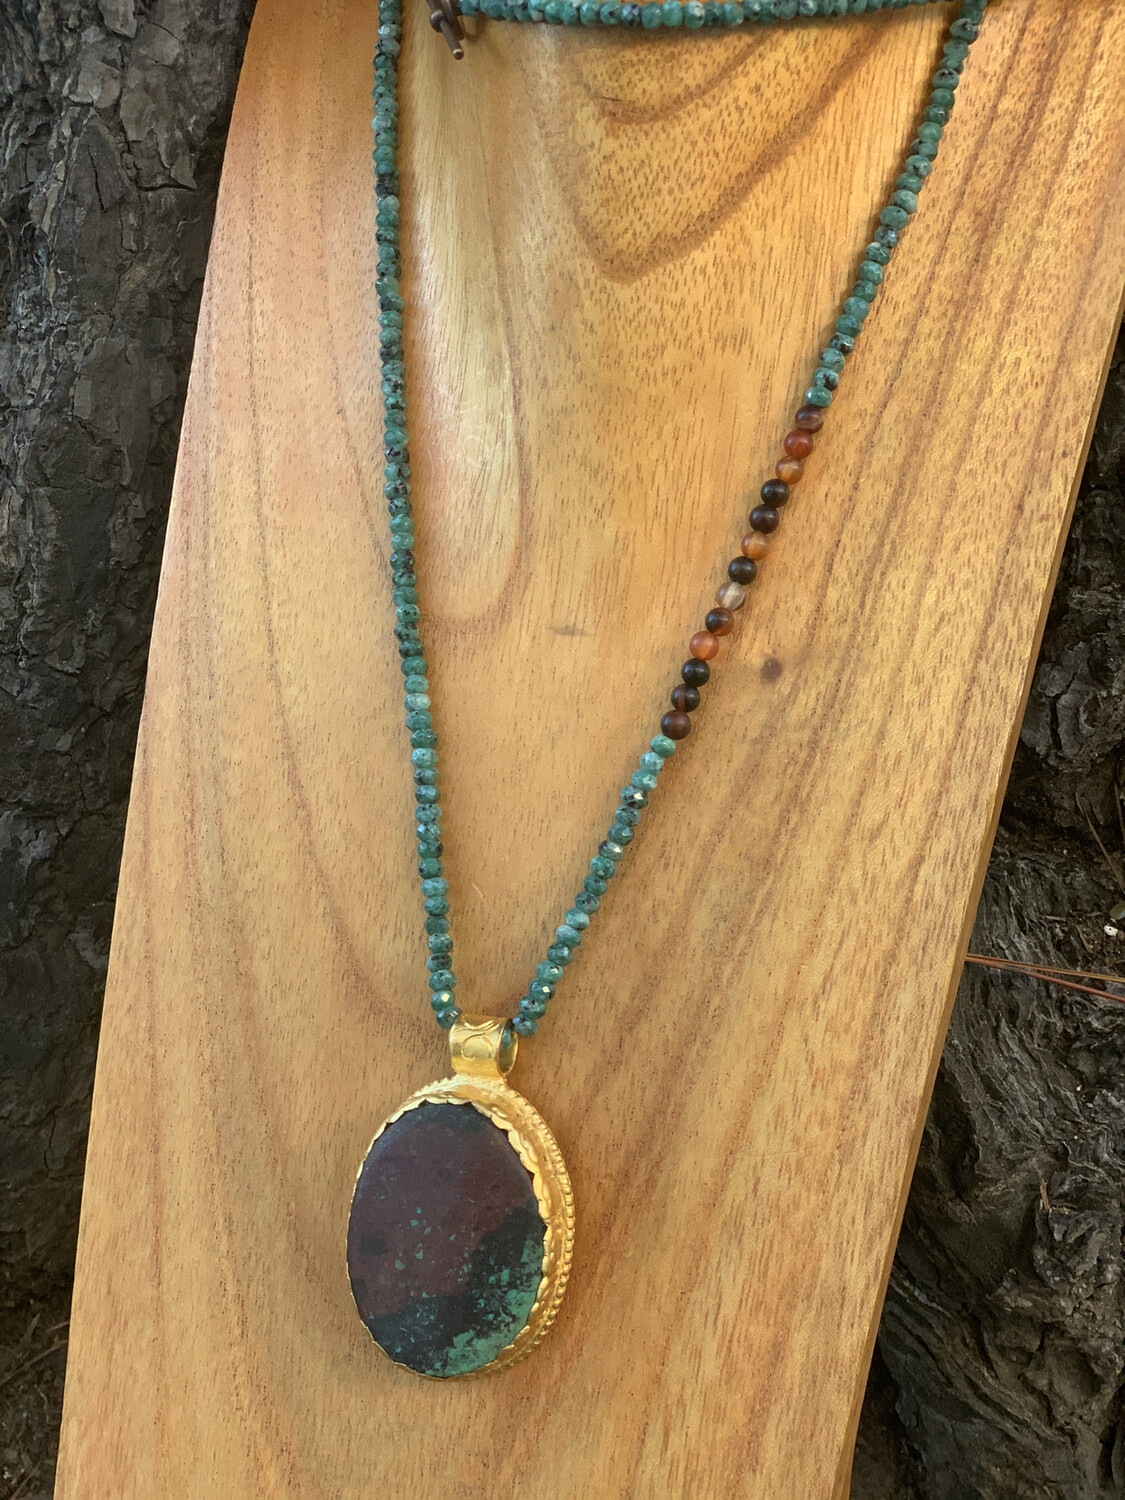 Chrysocolla pendant with Jade and Agate accents